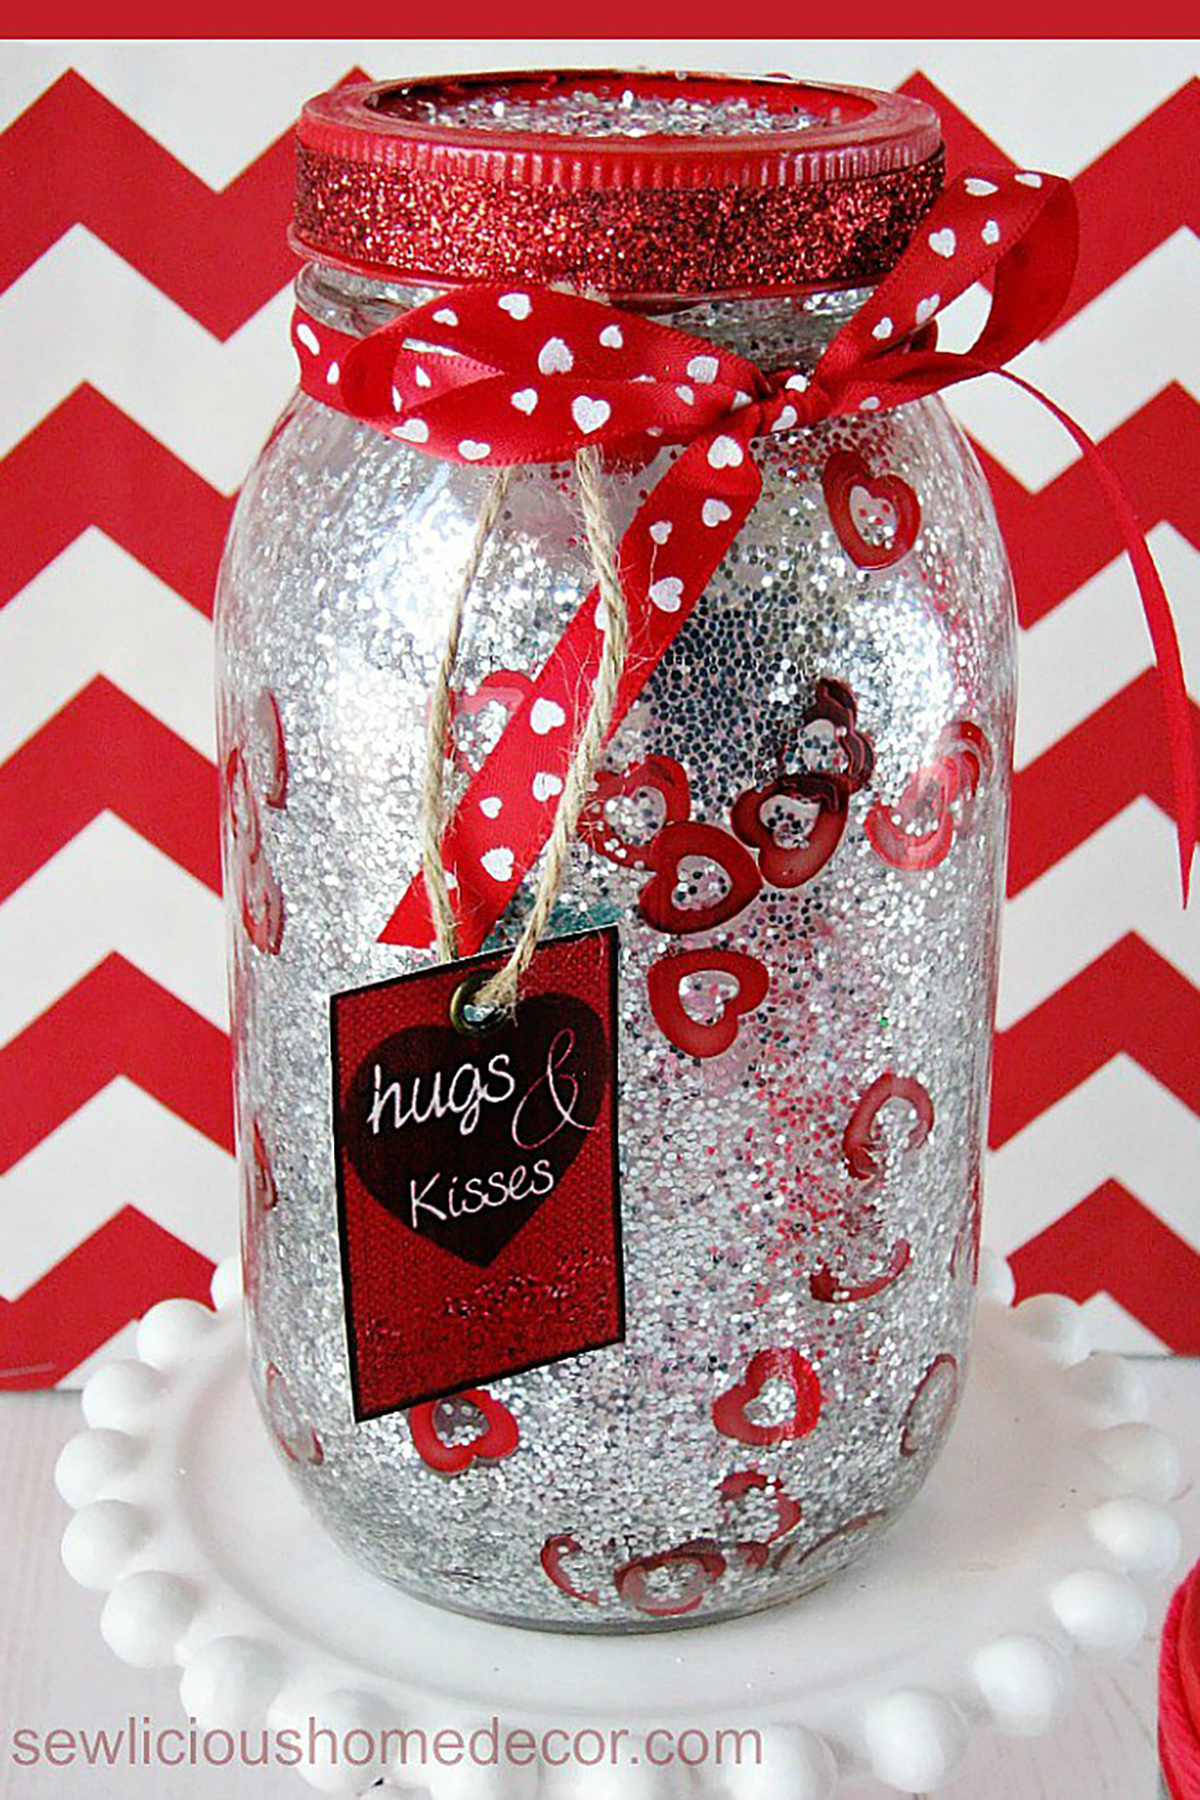 Affordable Cute Valentines Day Mason Jars Ideas Valentineus Day Mason Jar  Crafts With Cute Valentines Day Idea For Him